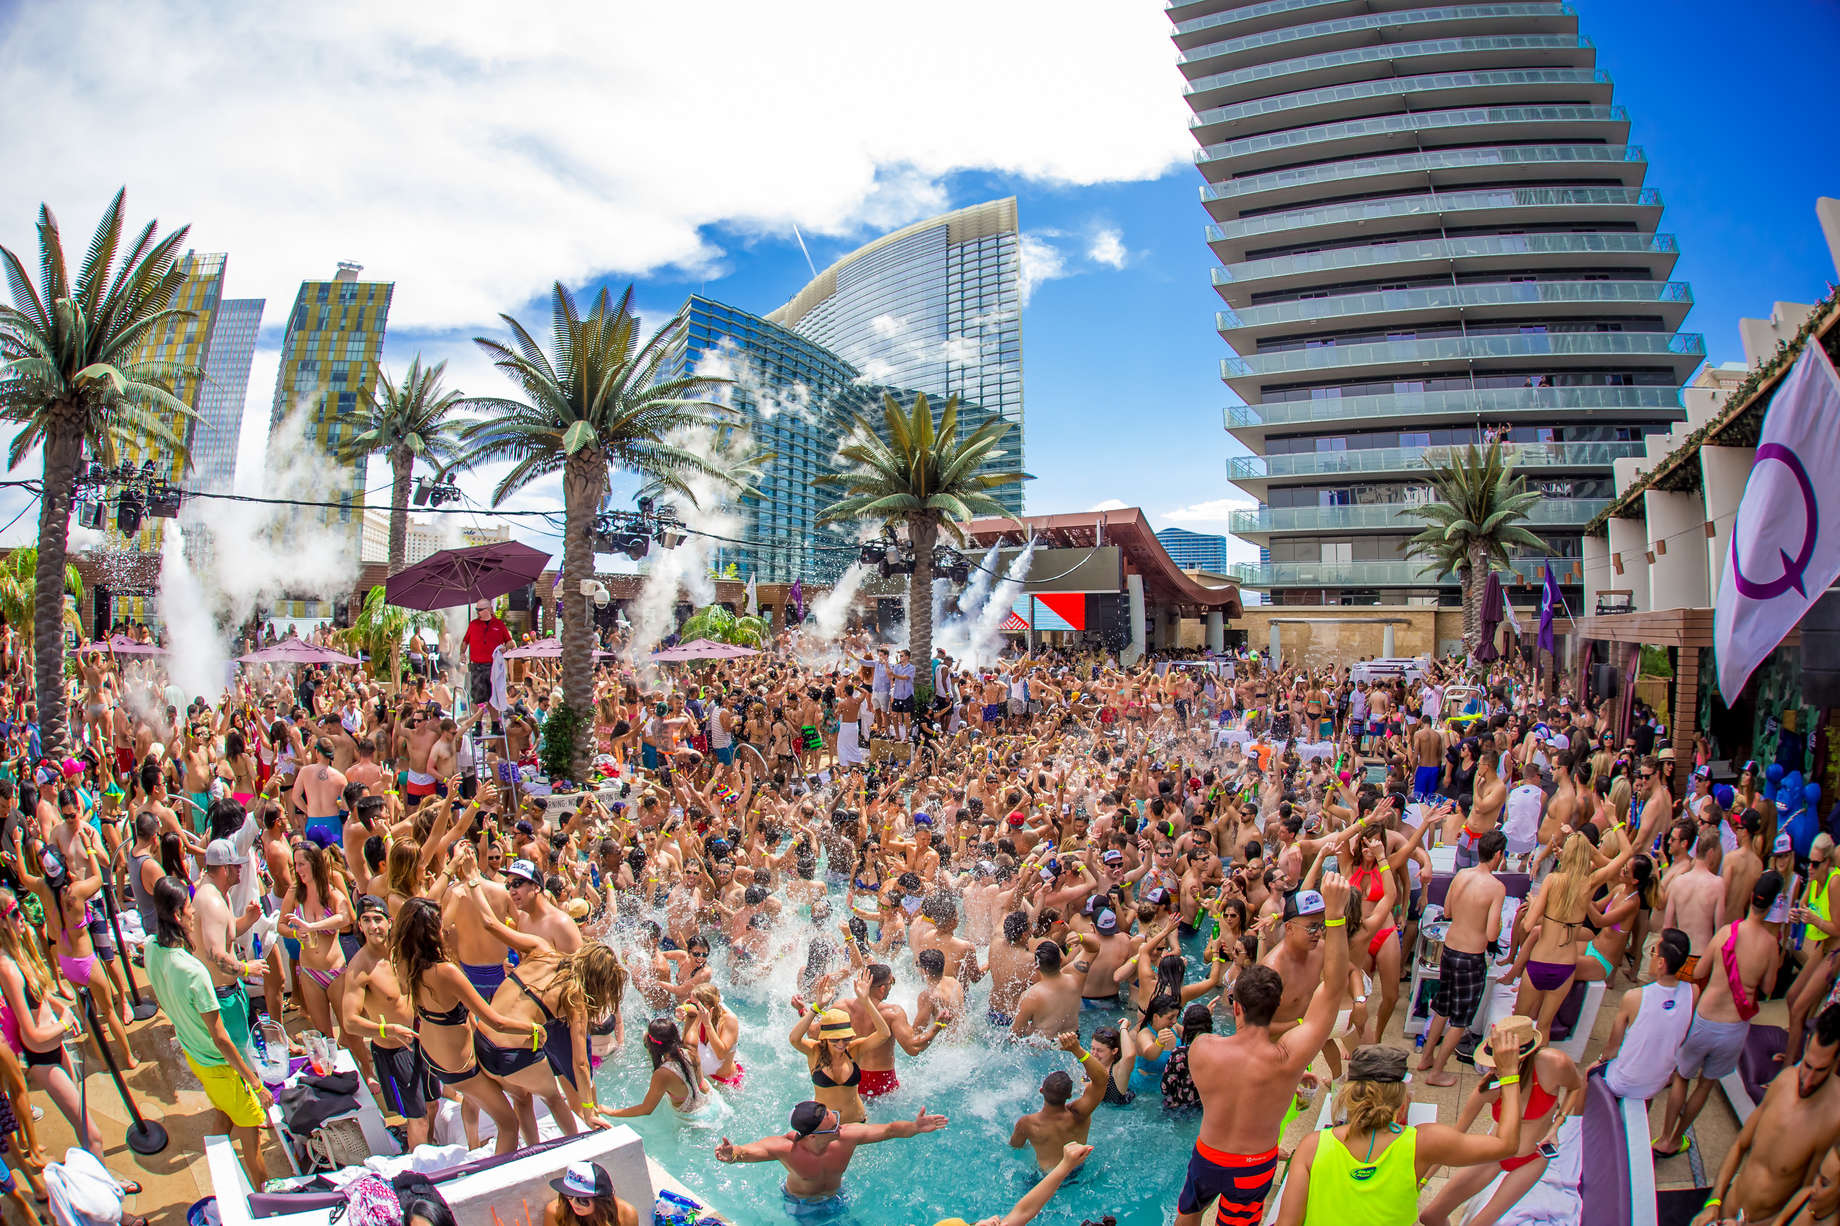 Best Dj Pool 2020 Best Las Vegas Pool Parties 2019: Dayclubs to Cool Off at This